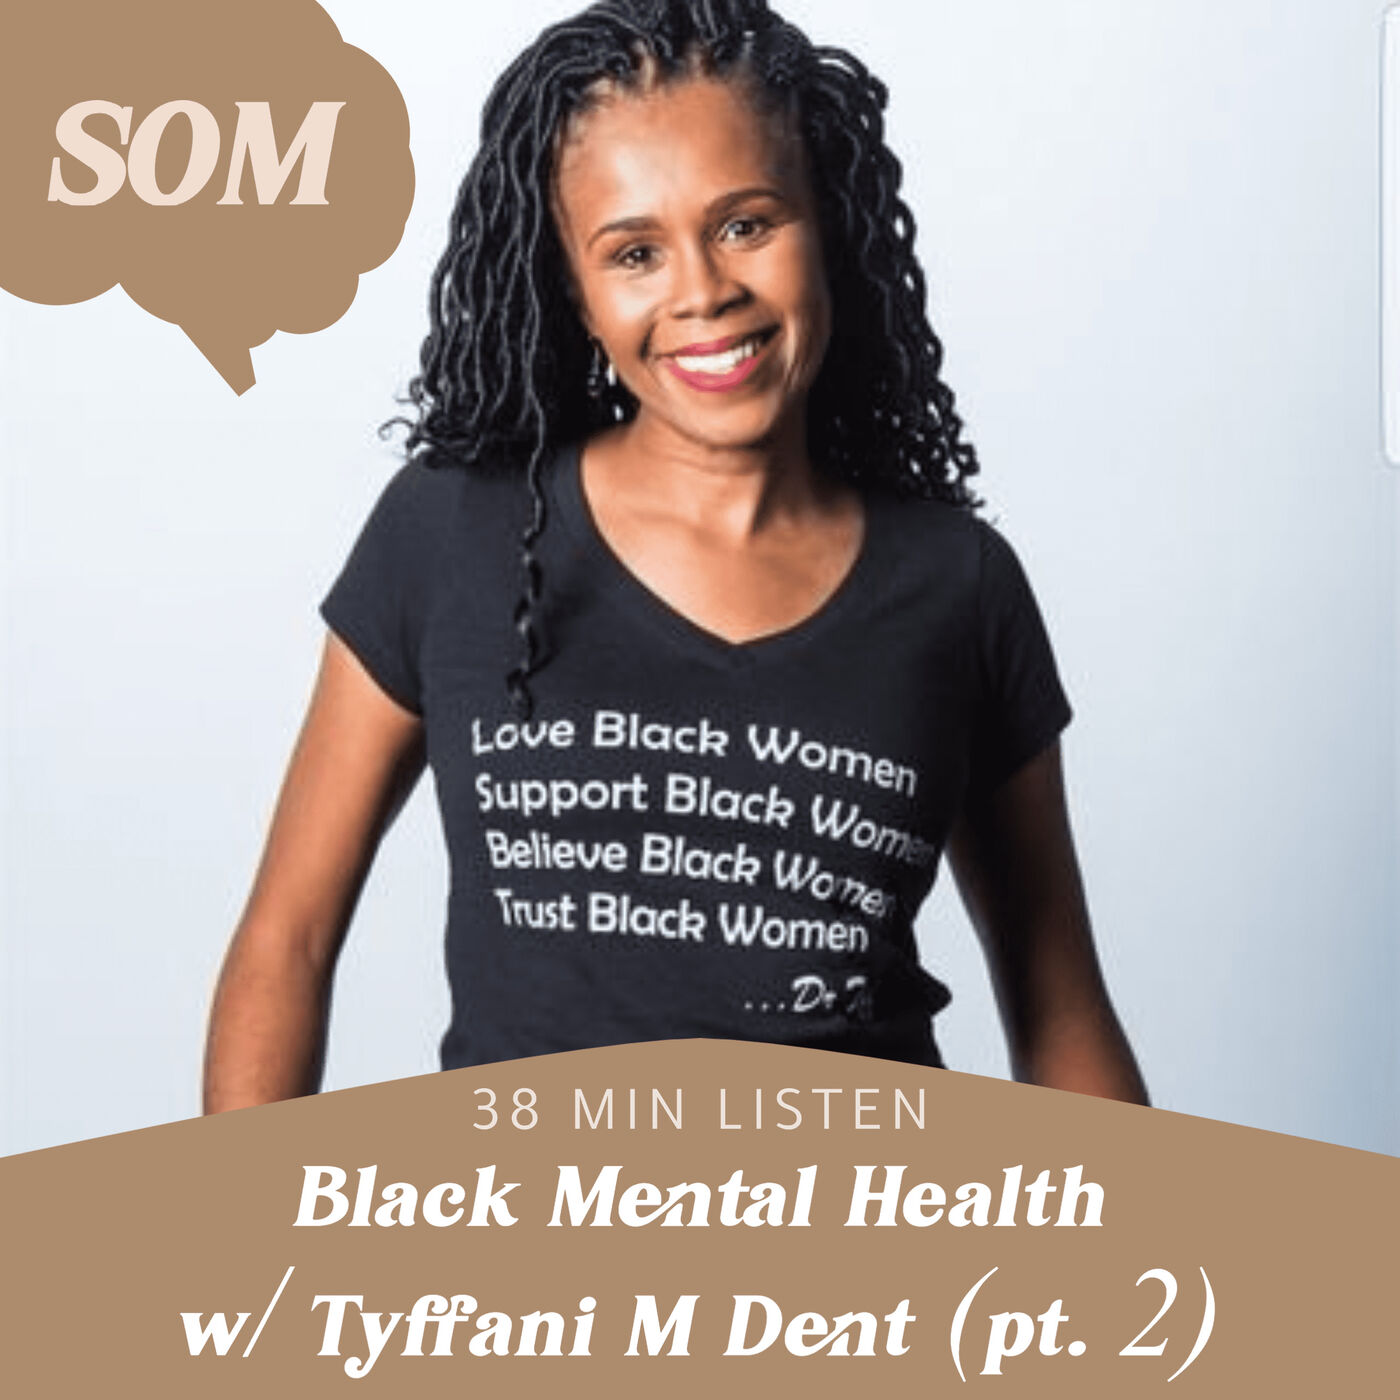 Black Mental Health with Dr. Tyffani M Dent (Part 2)